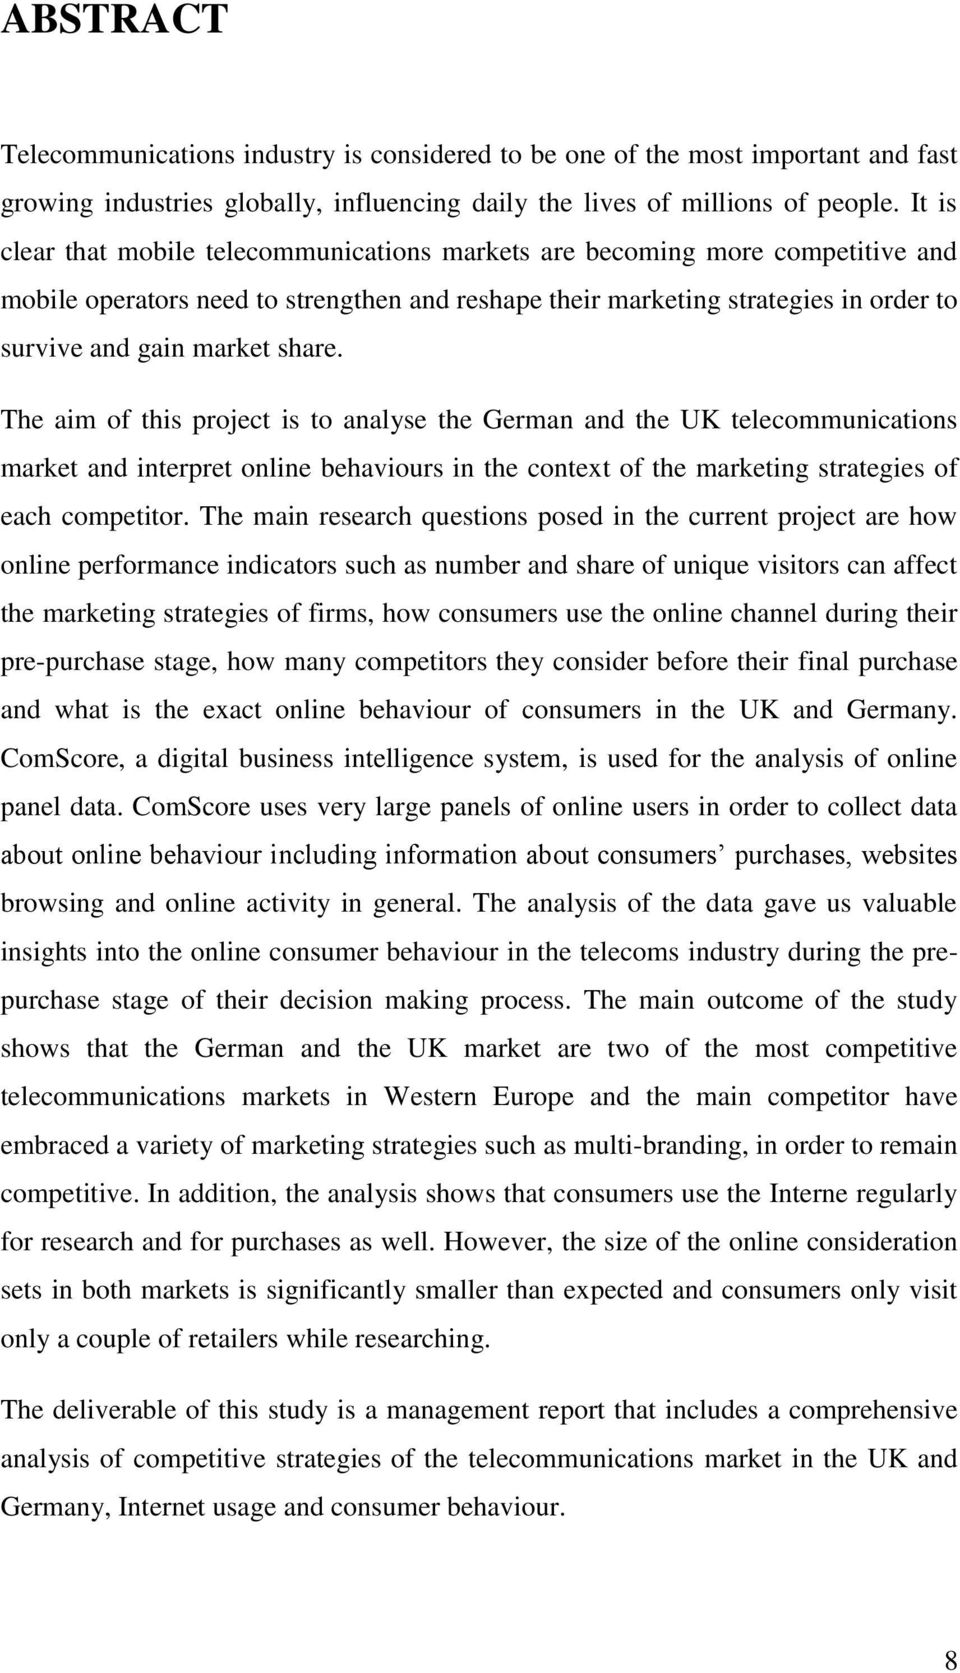 share. The aim of this project is to analyse the German and the UK telecommunications market and interpret online behaviours in the context of the marketing strategies of each competitor.